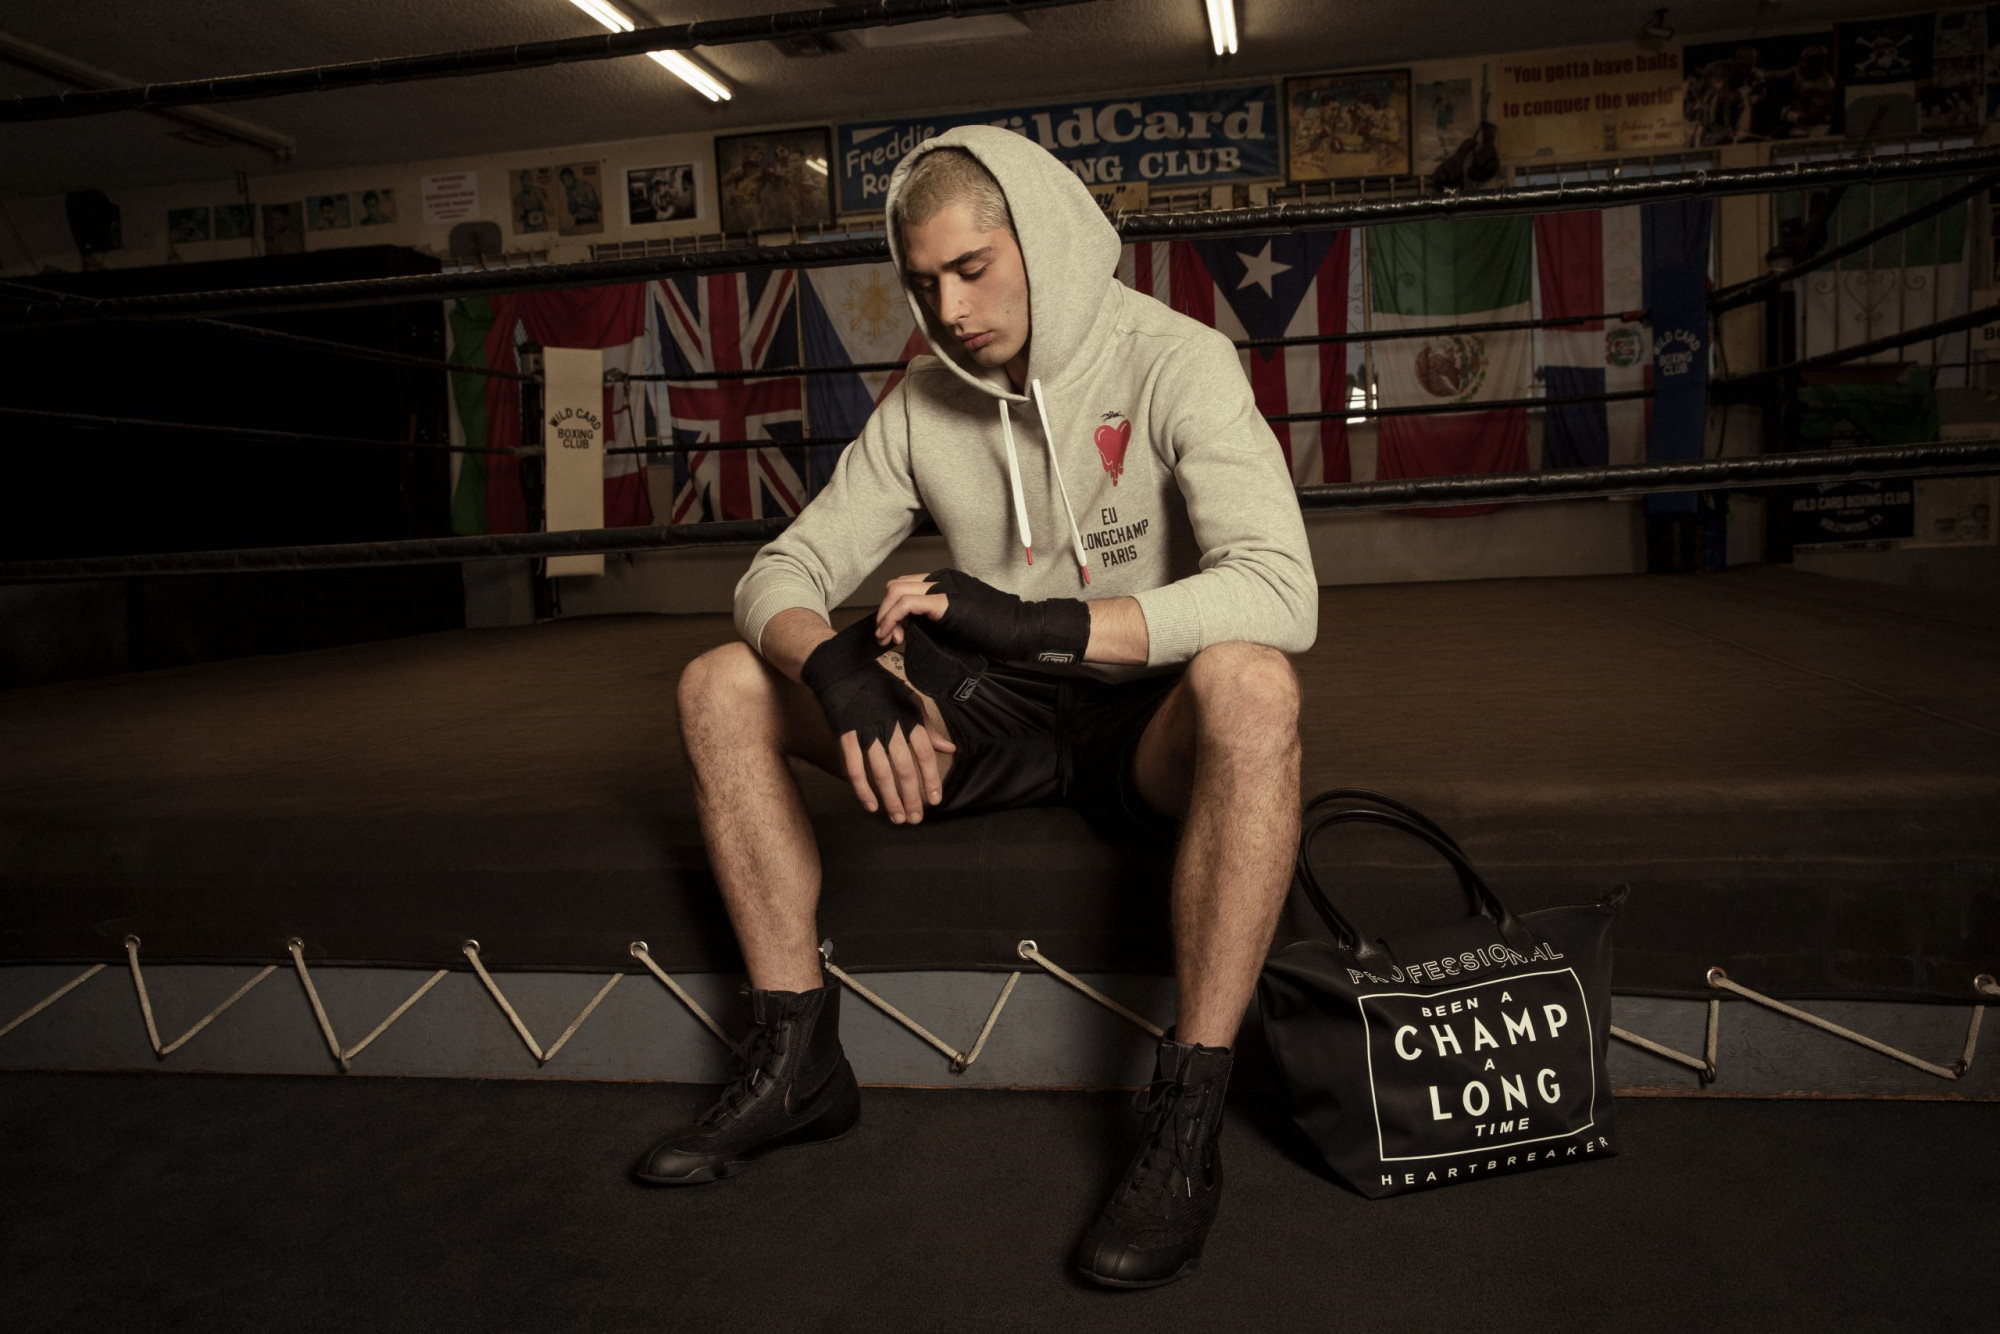 """Longchamp X EU """"Been A Champ"""" Collection Brings Out The Champ In You"""